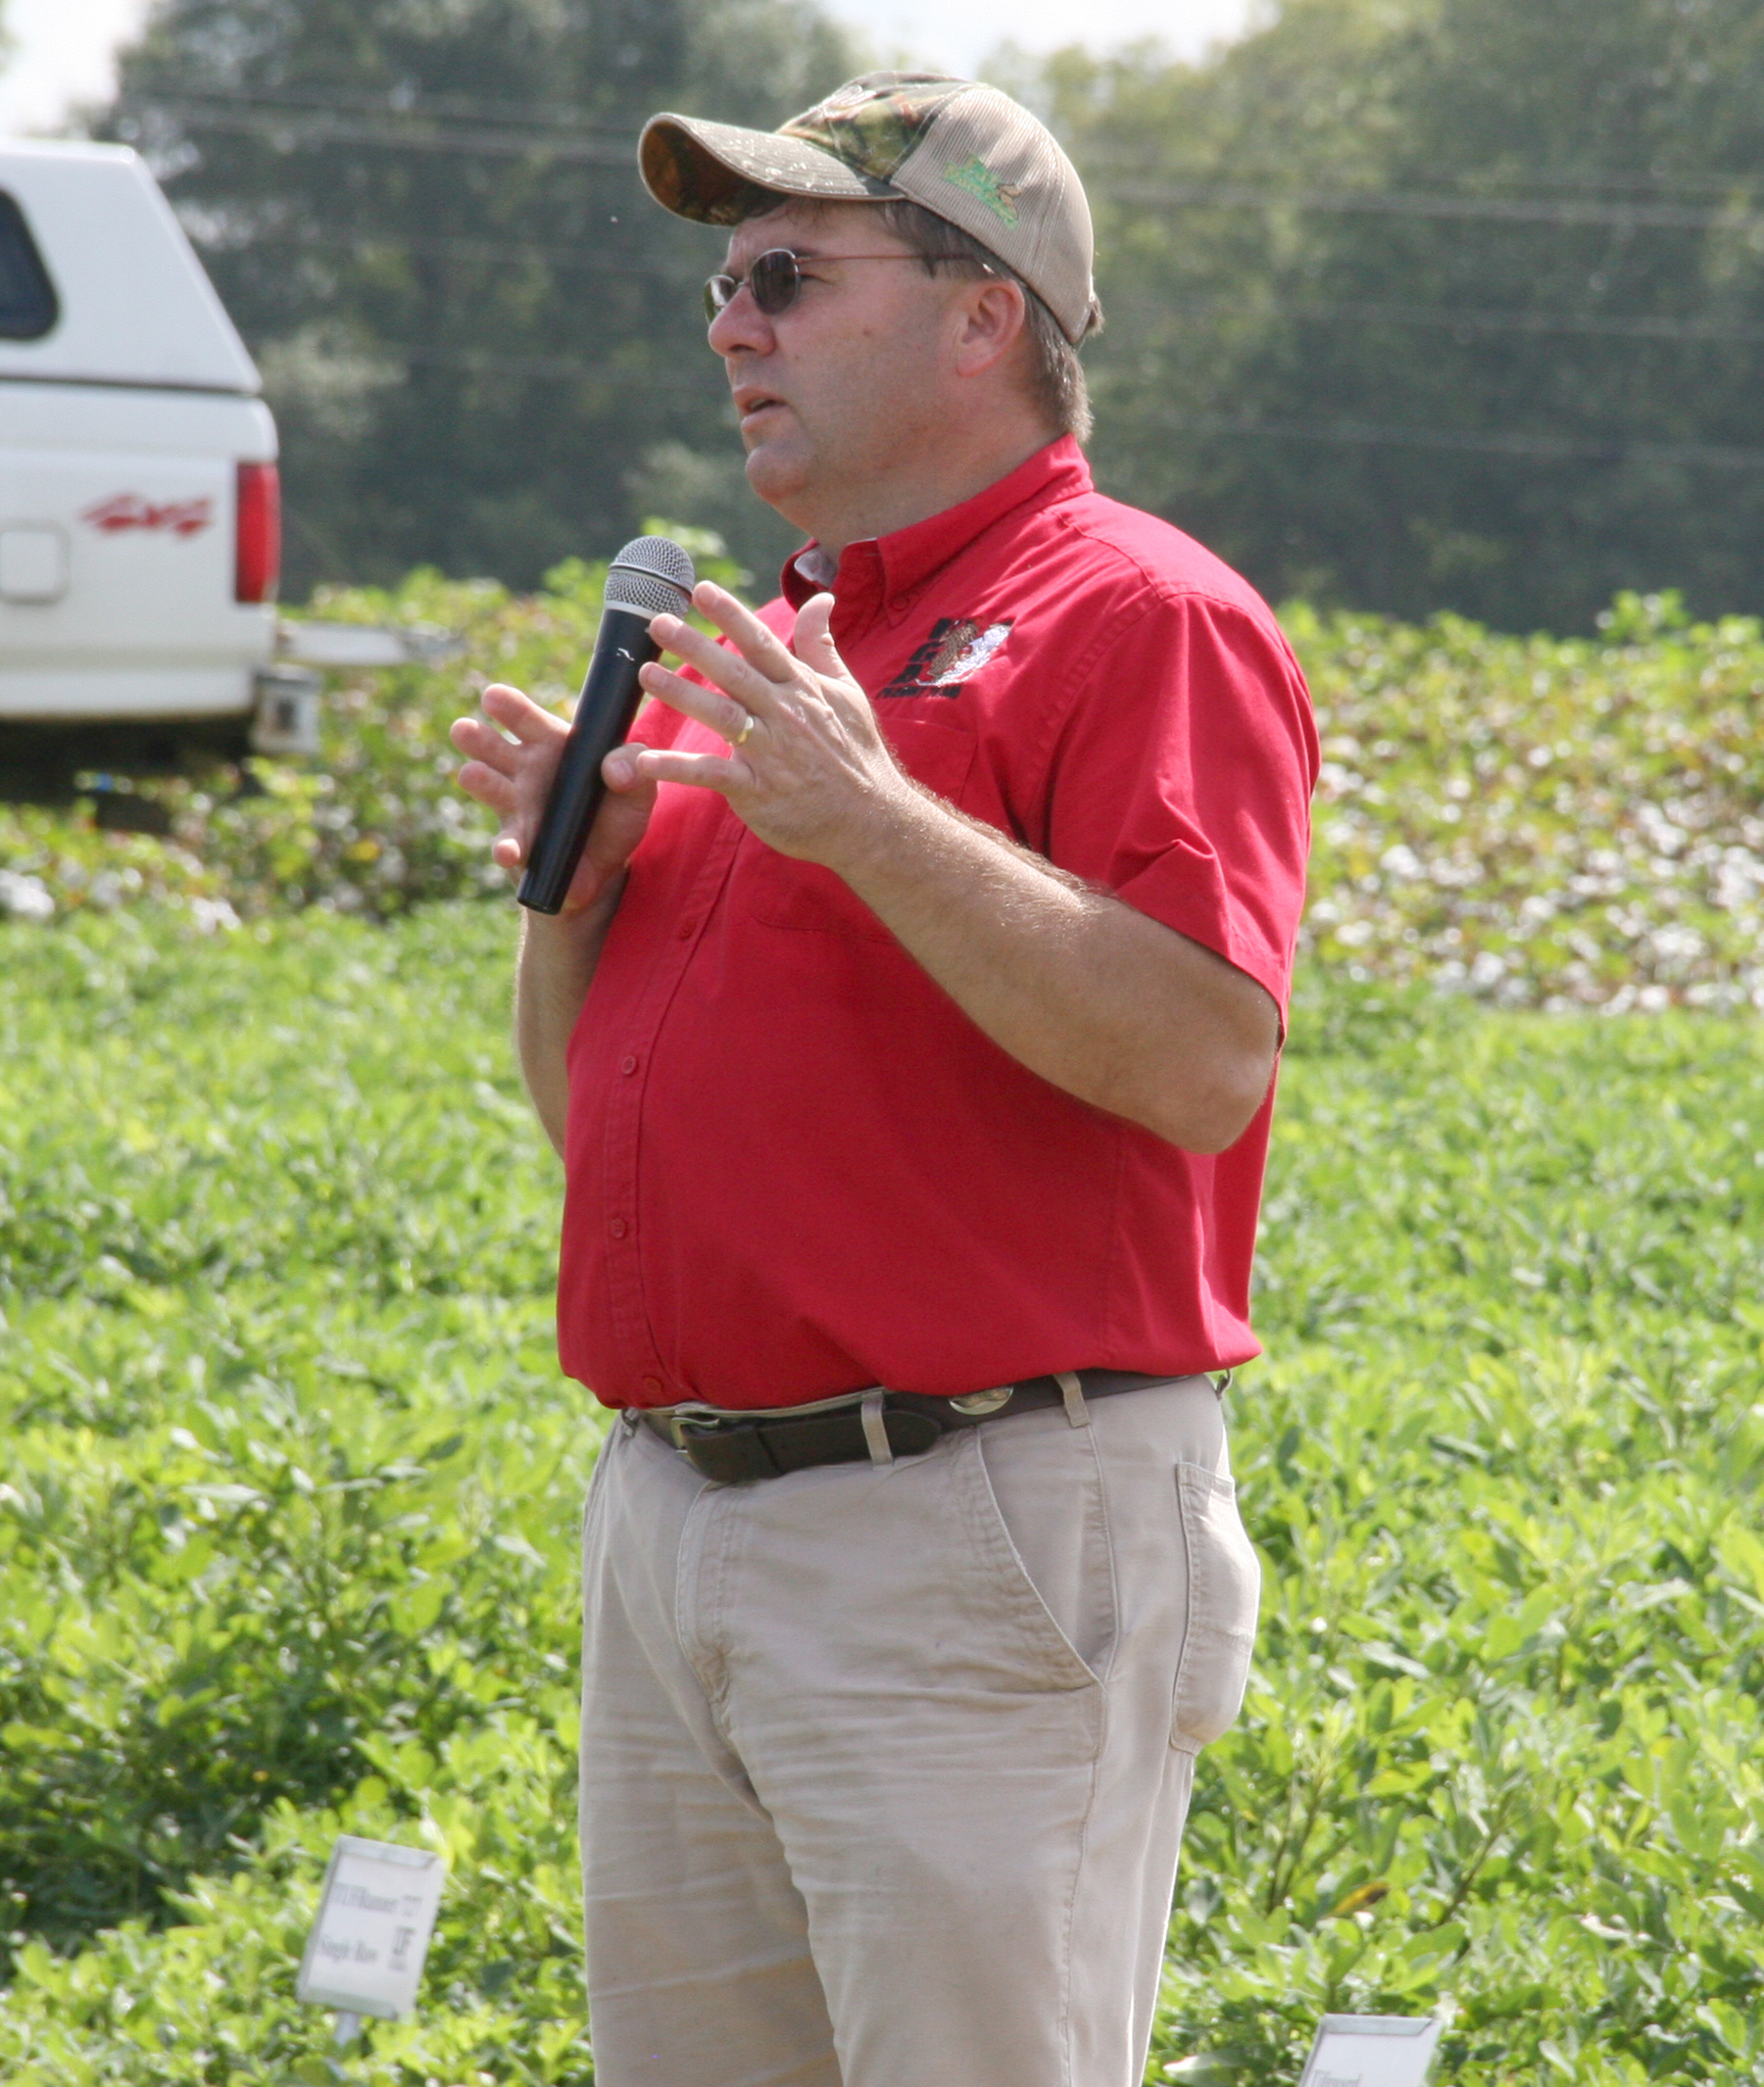 University of Georgia Extension peanut agronomist Scott Monfort speaks during UGA's annual Cotton and Peanut Field Day, held Wednesday, Sept. 9.